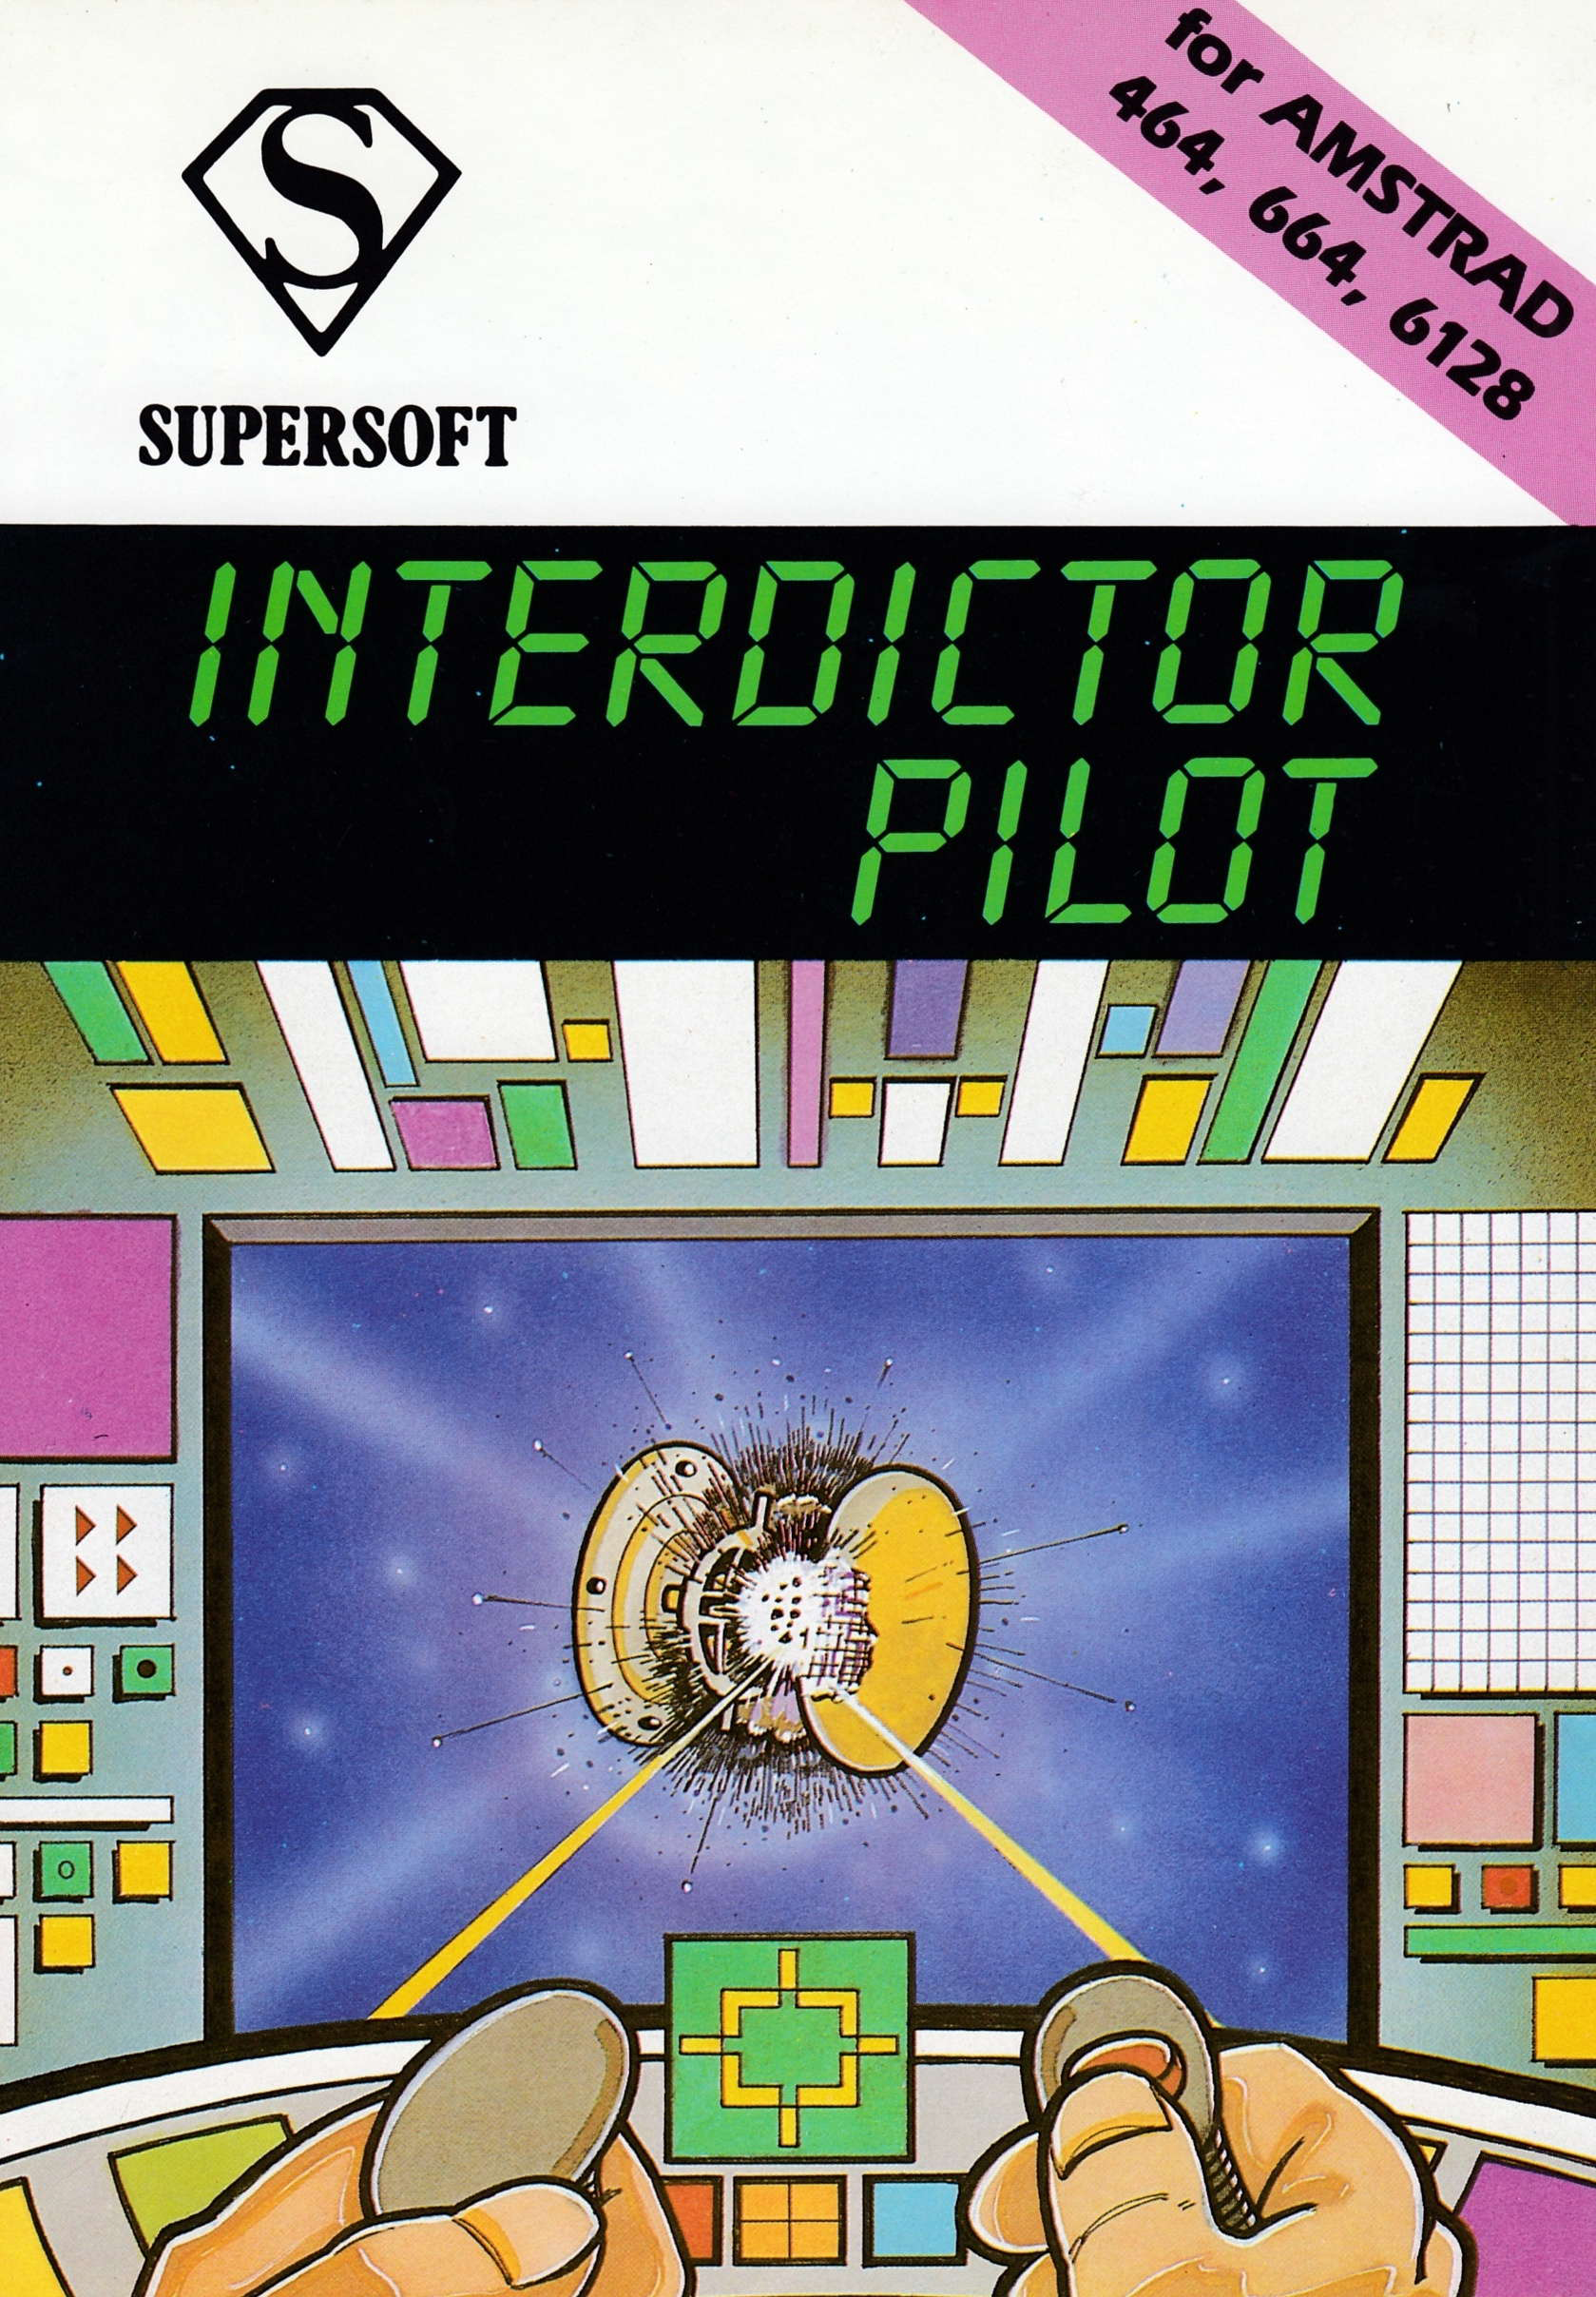 screenshot of the Amstrad CPC game Interdictor pilot by GameBase CPC